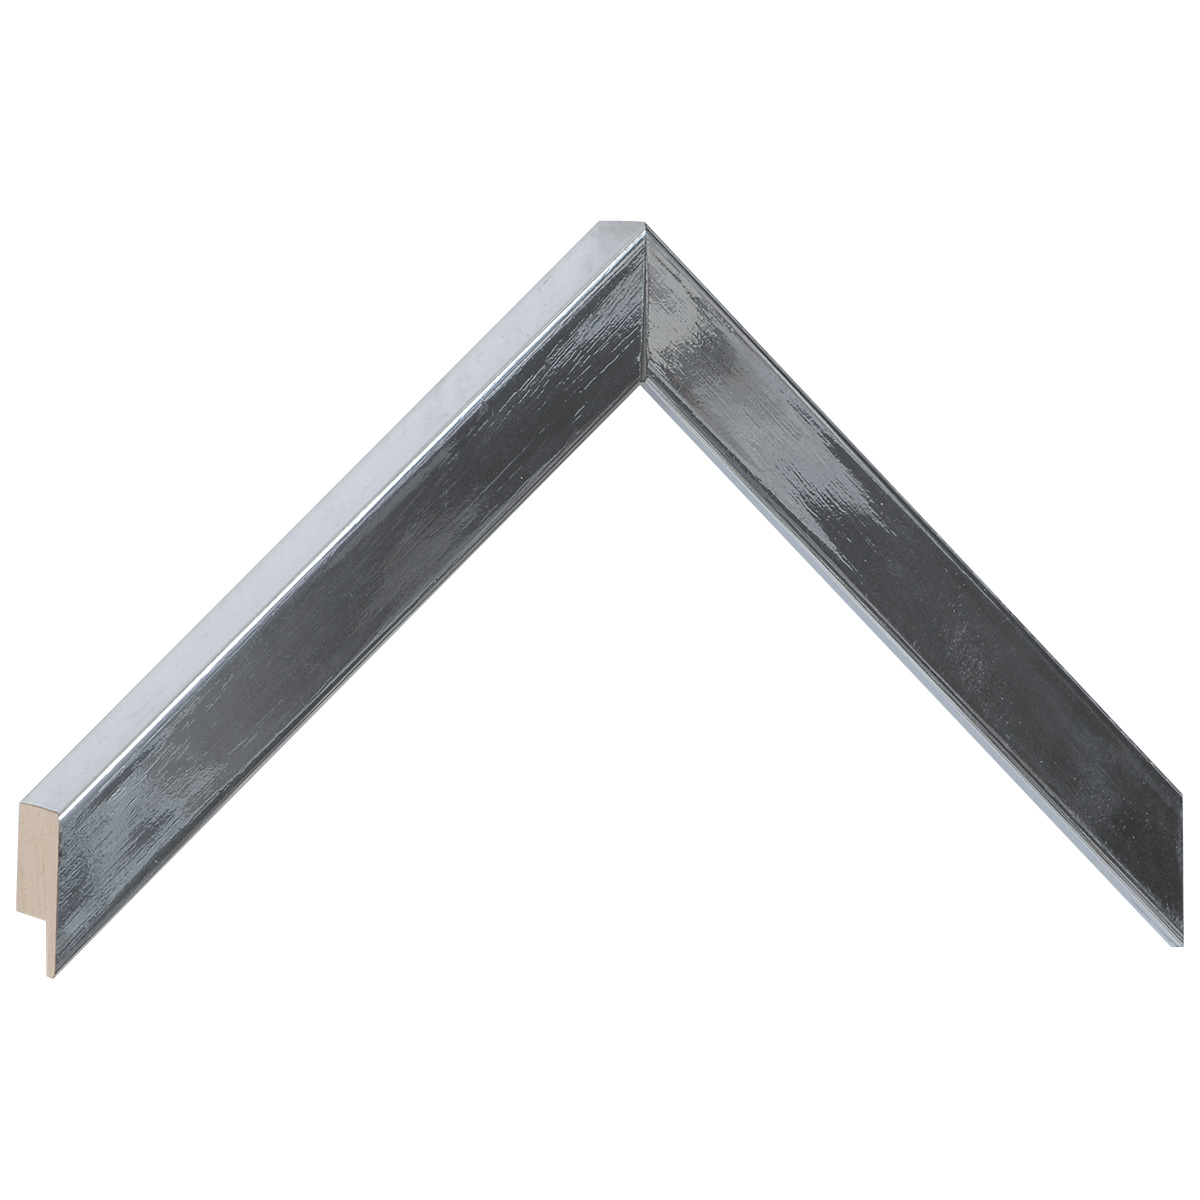 Moulding ayous, width 20mm height 25 - Glossy Silver